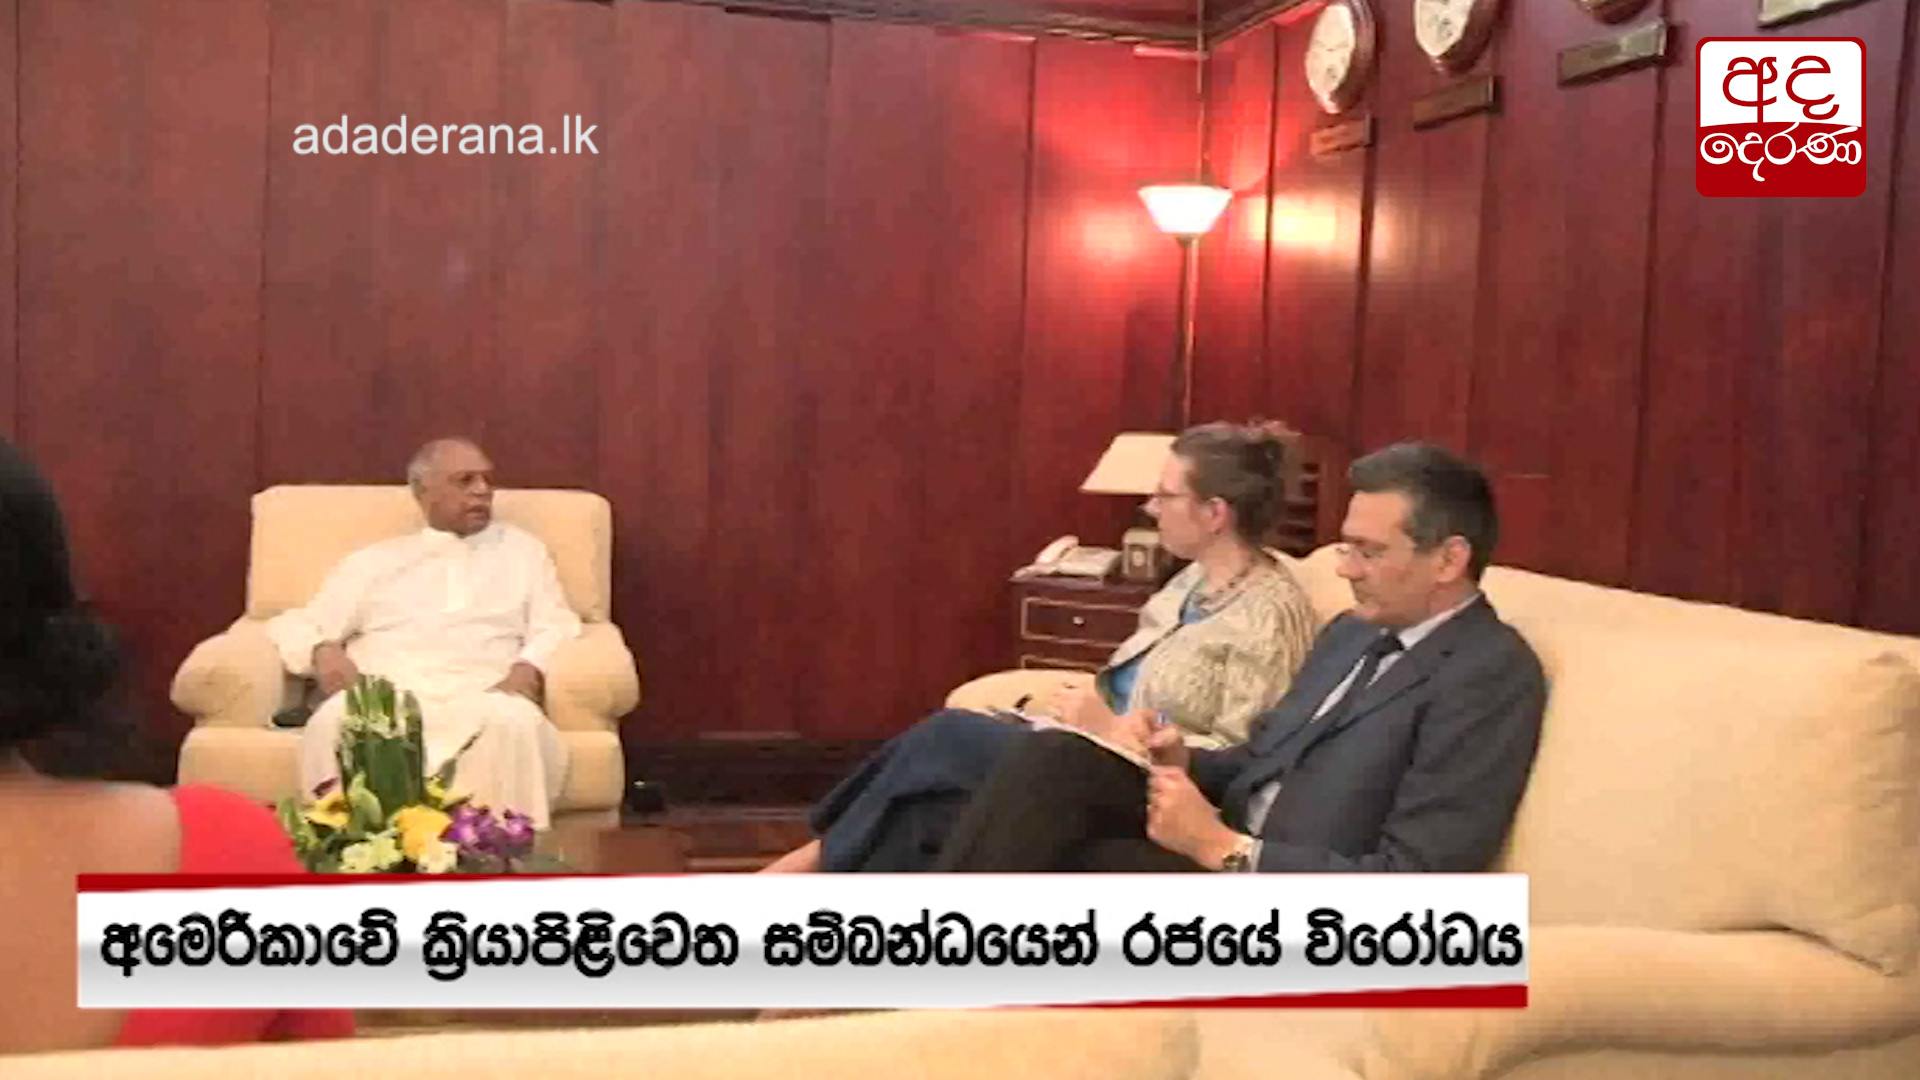 Sri Lanka strongly objects US entry ban on Army Commander - Foreign Min.